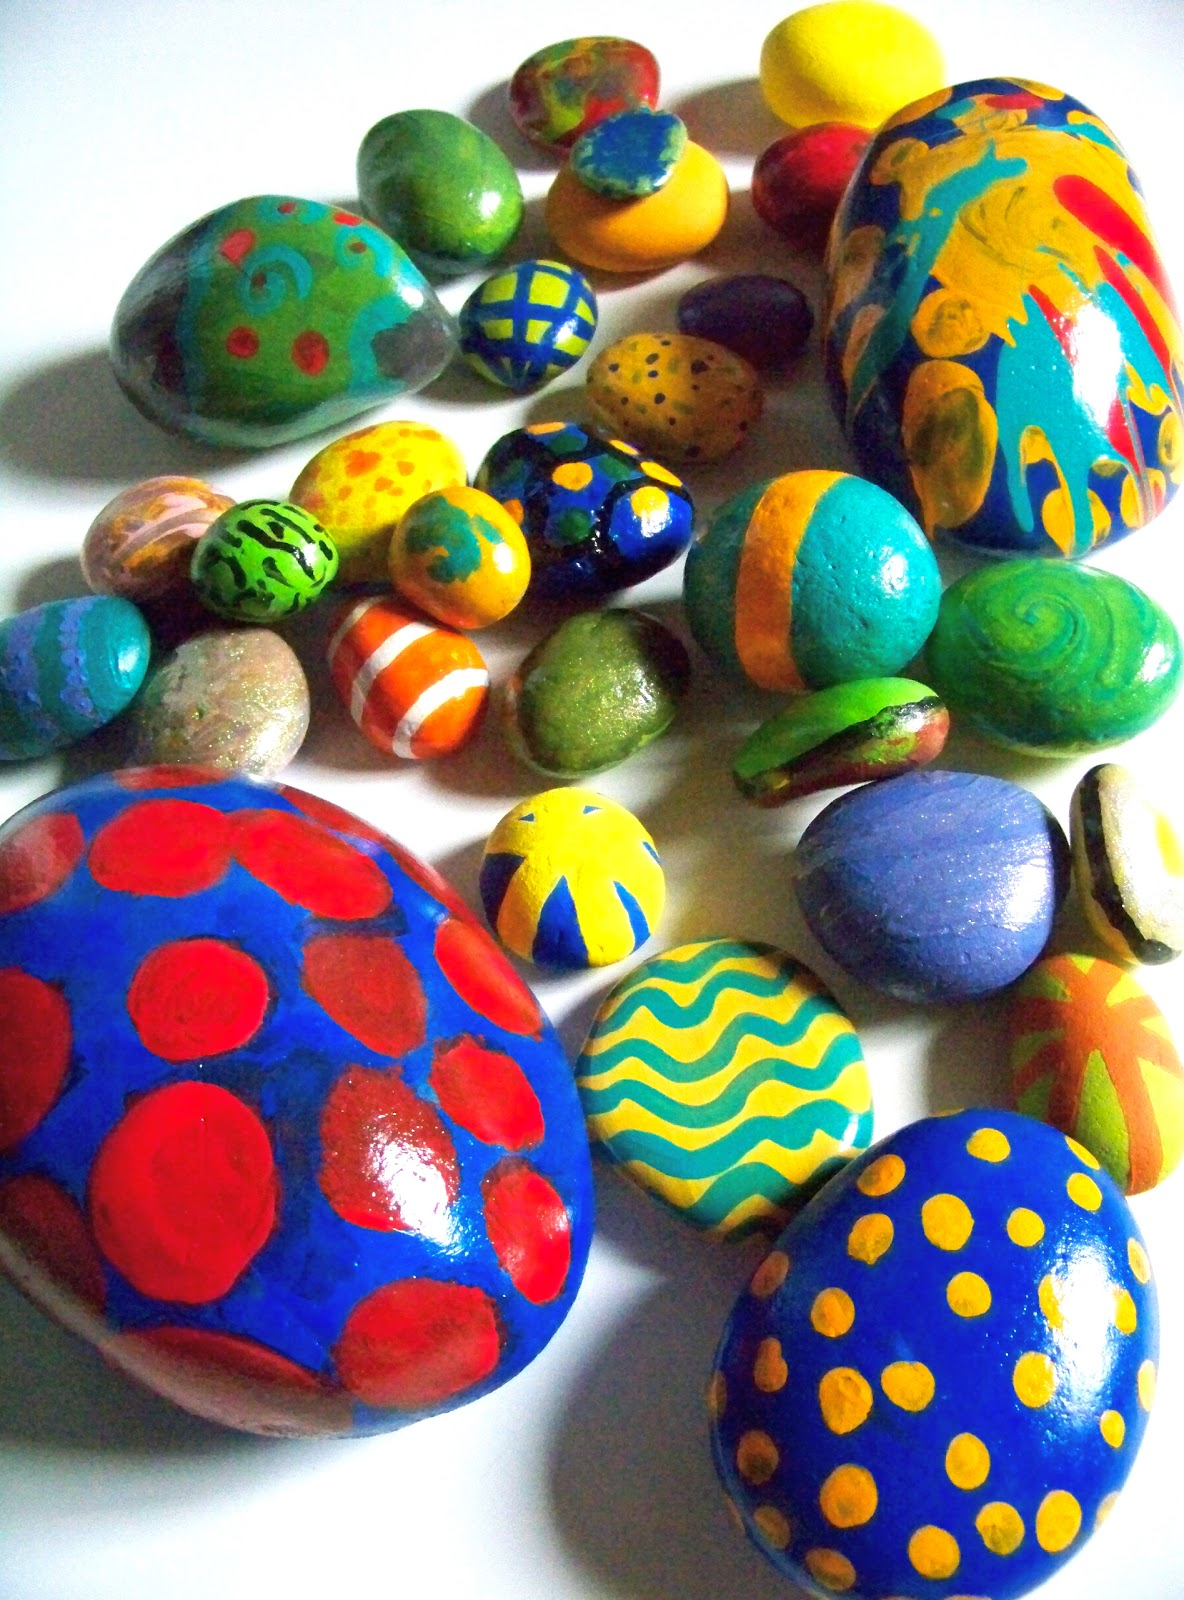 paint rock guys Painting rocks ideas easy paint rock for try at home stone art rock painting ideas rock painting patterns rock crafts and rock painting painting rocks ideas for beginners find this pin and more on painted rocks by wynema laabs.